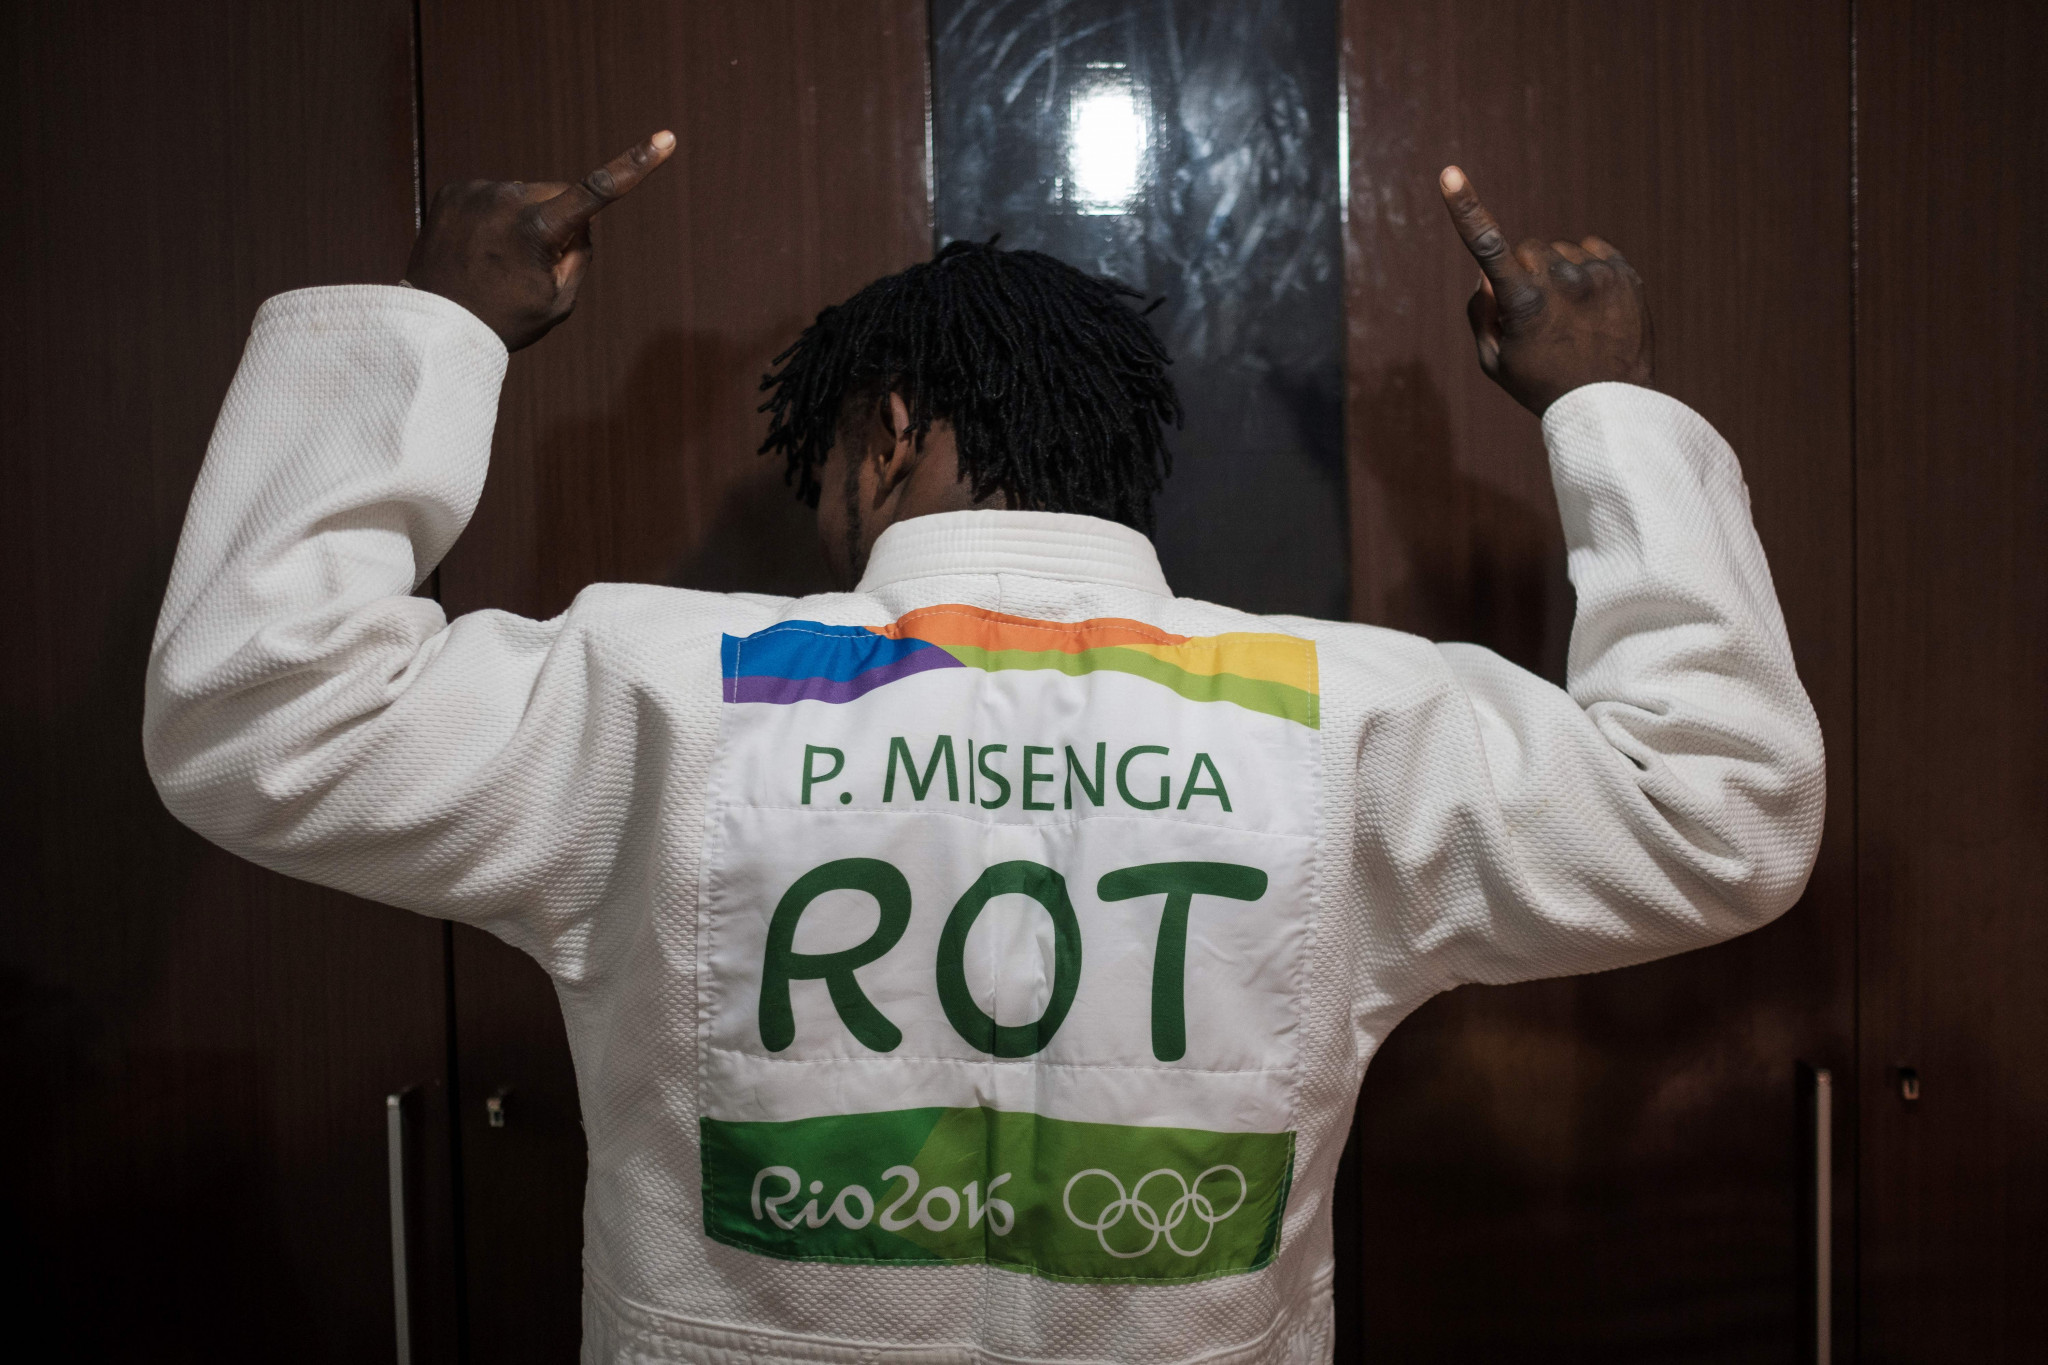 The refugee team made its debut at the Rio 2016 Olympic Games ©Getty Images